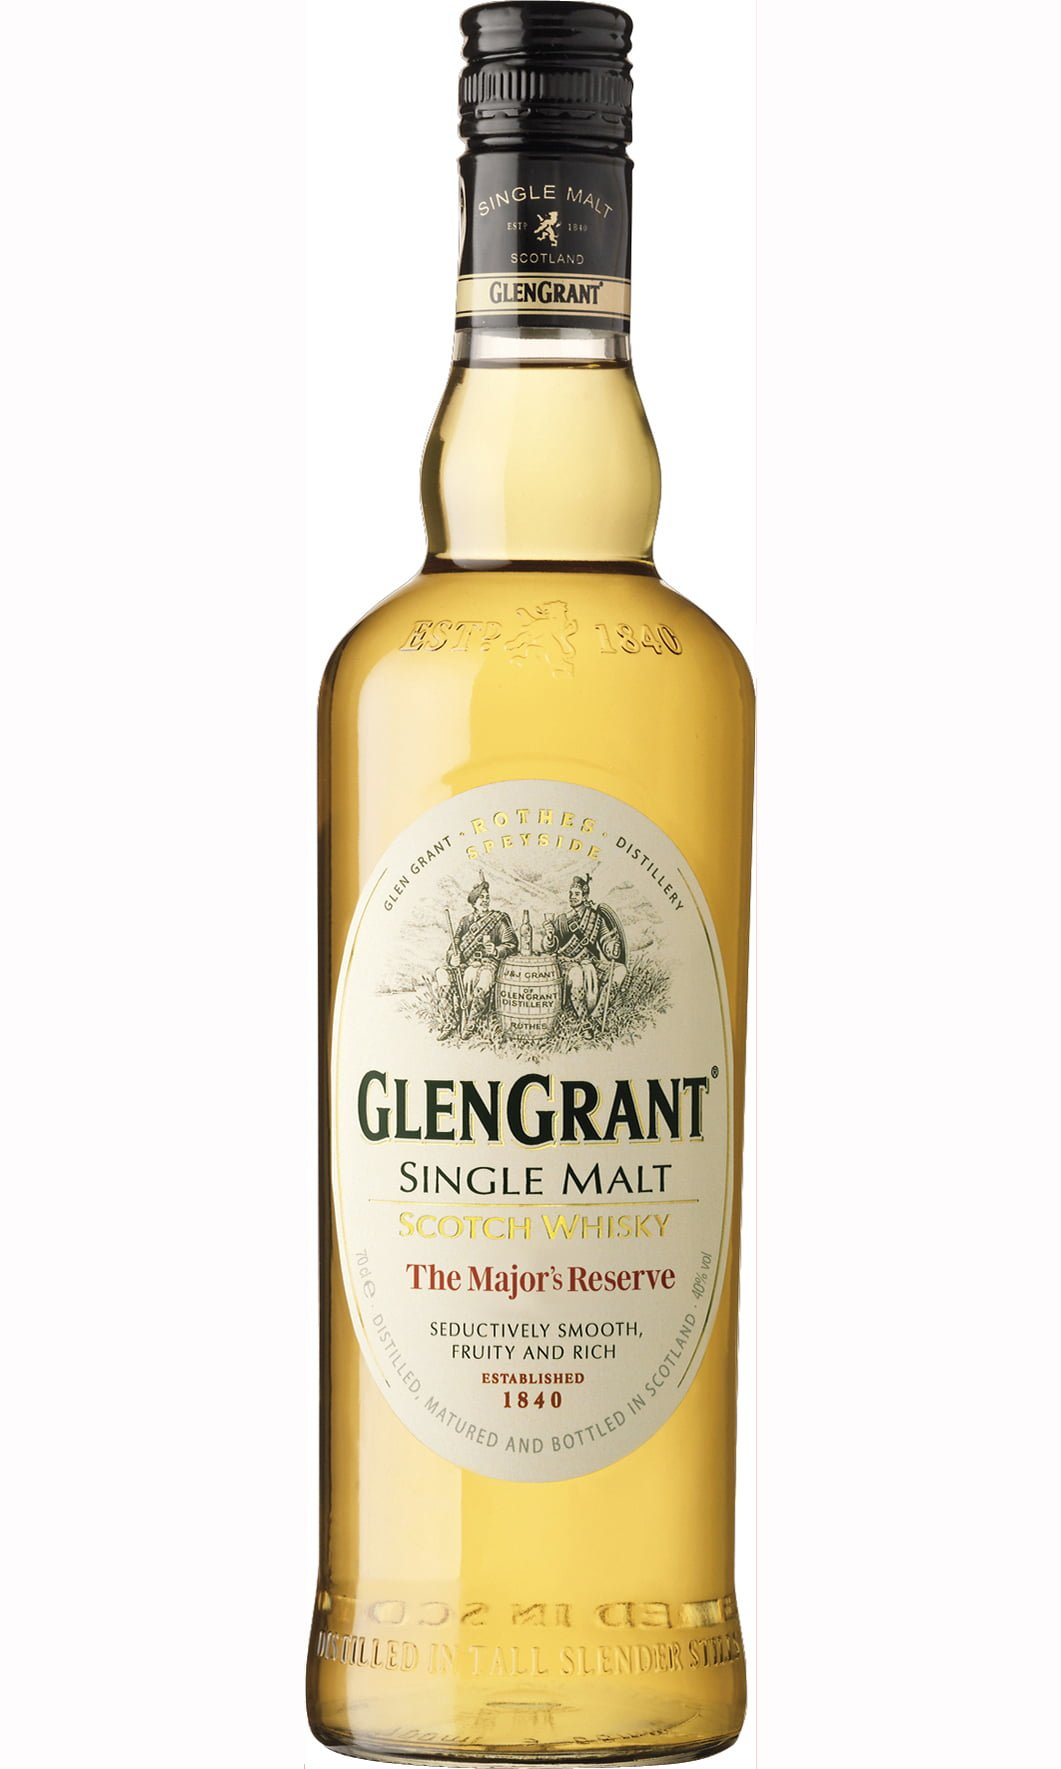 Glen Grant - The Major's Reserve 70cl Bottle